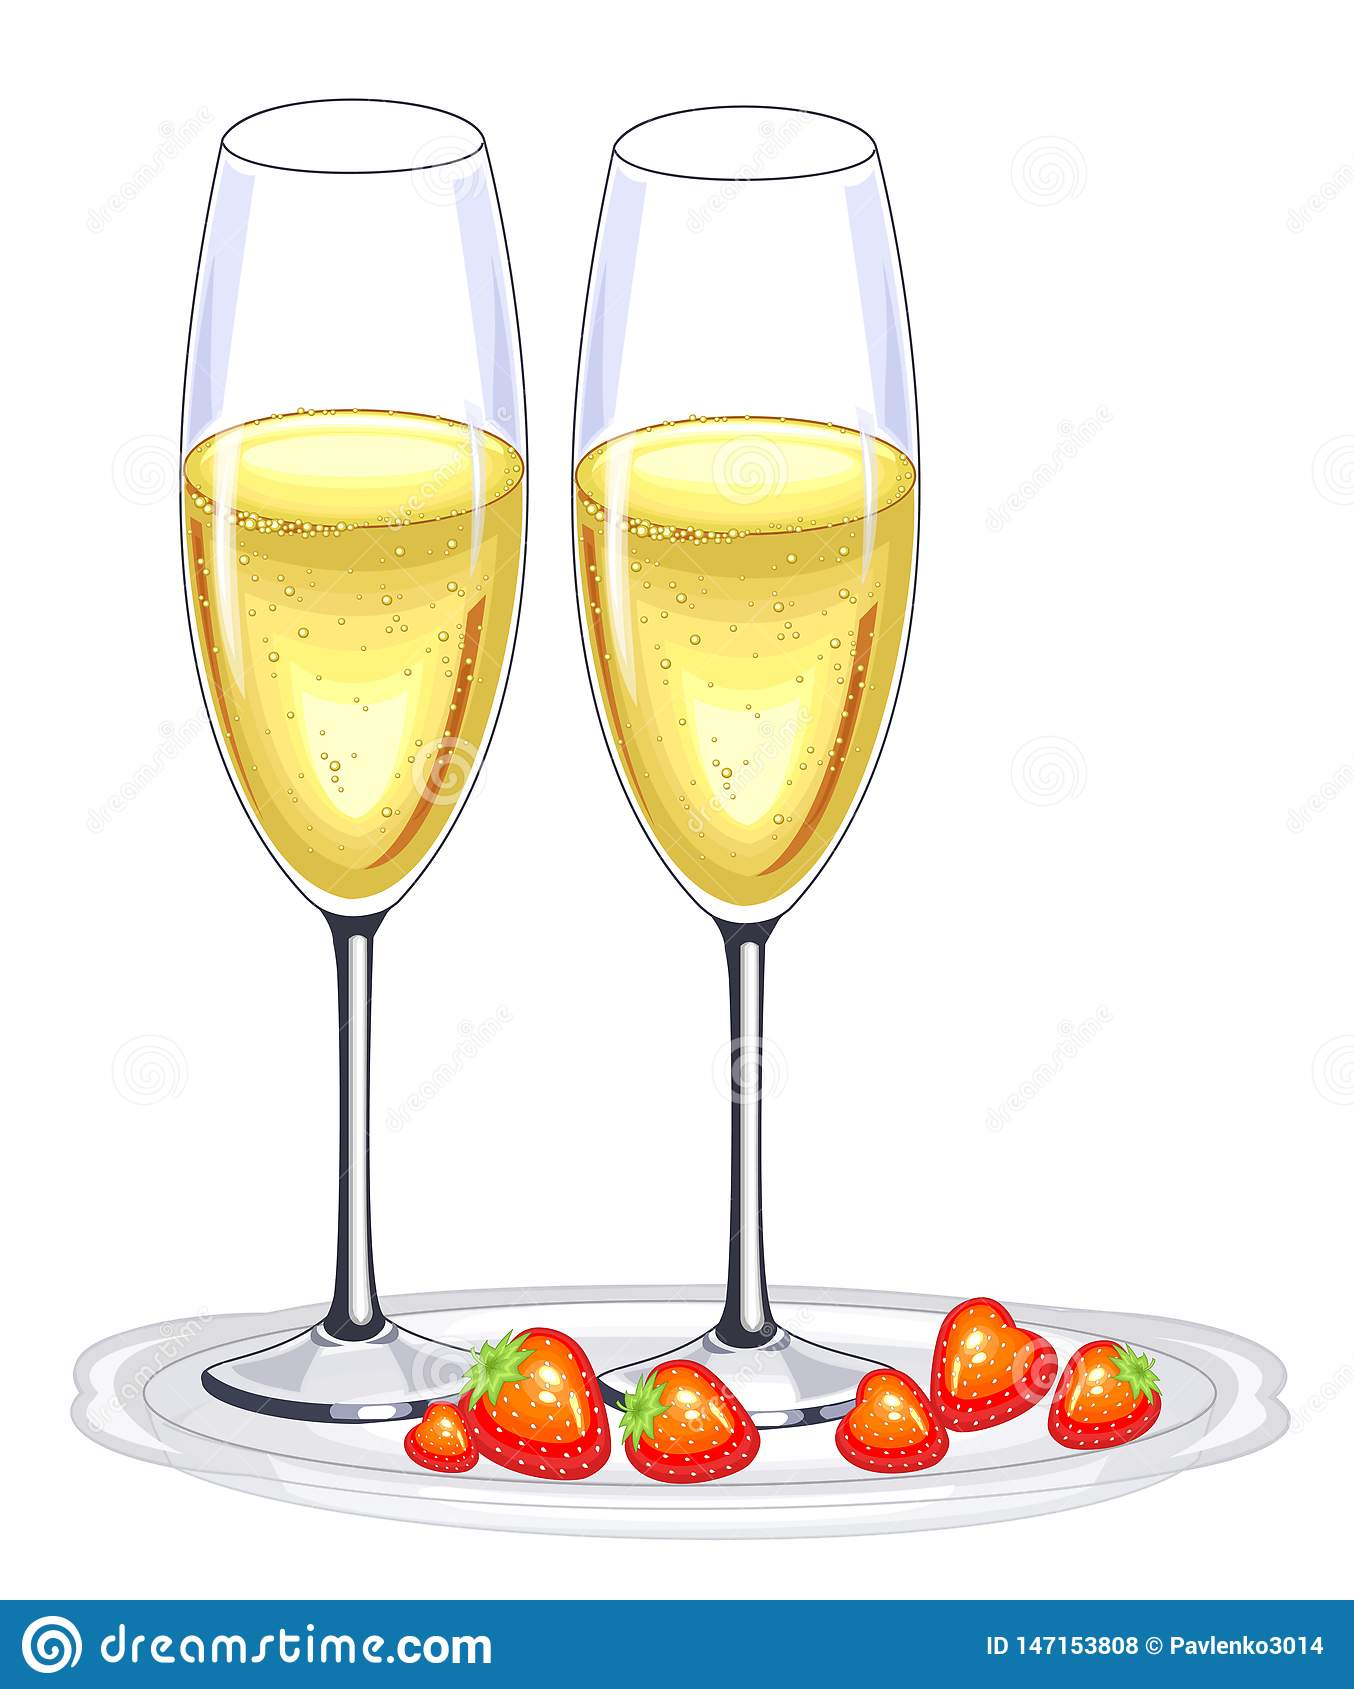 Two beautiful crystal glasses of champagne wine and red strawberries. Decoration of the festive table for the New Year, Christmas